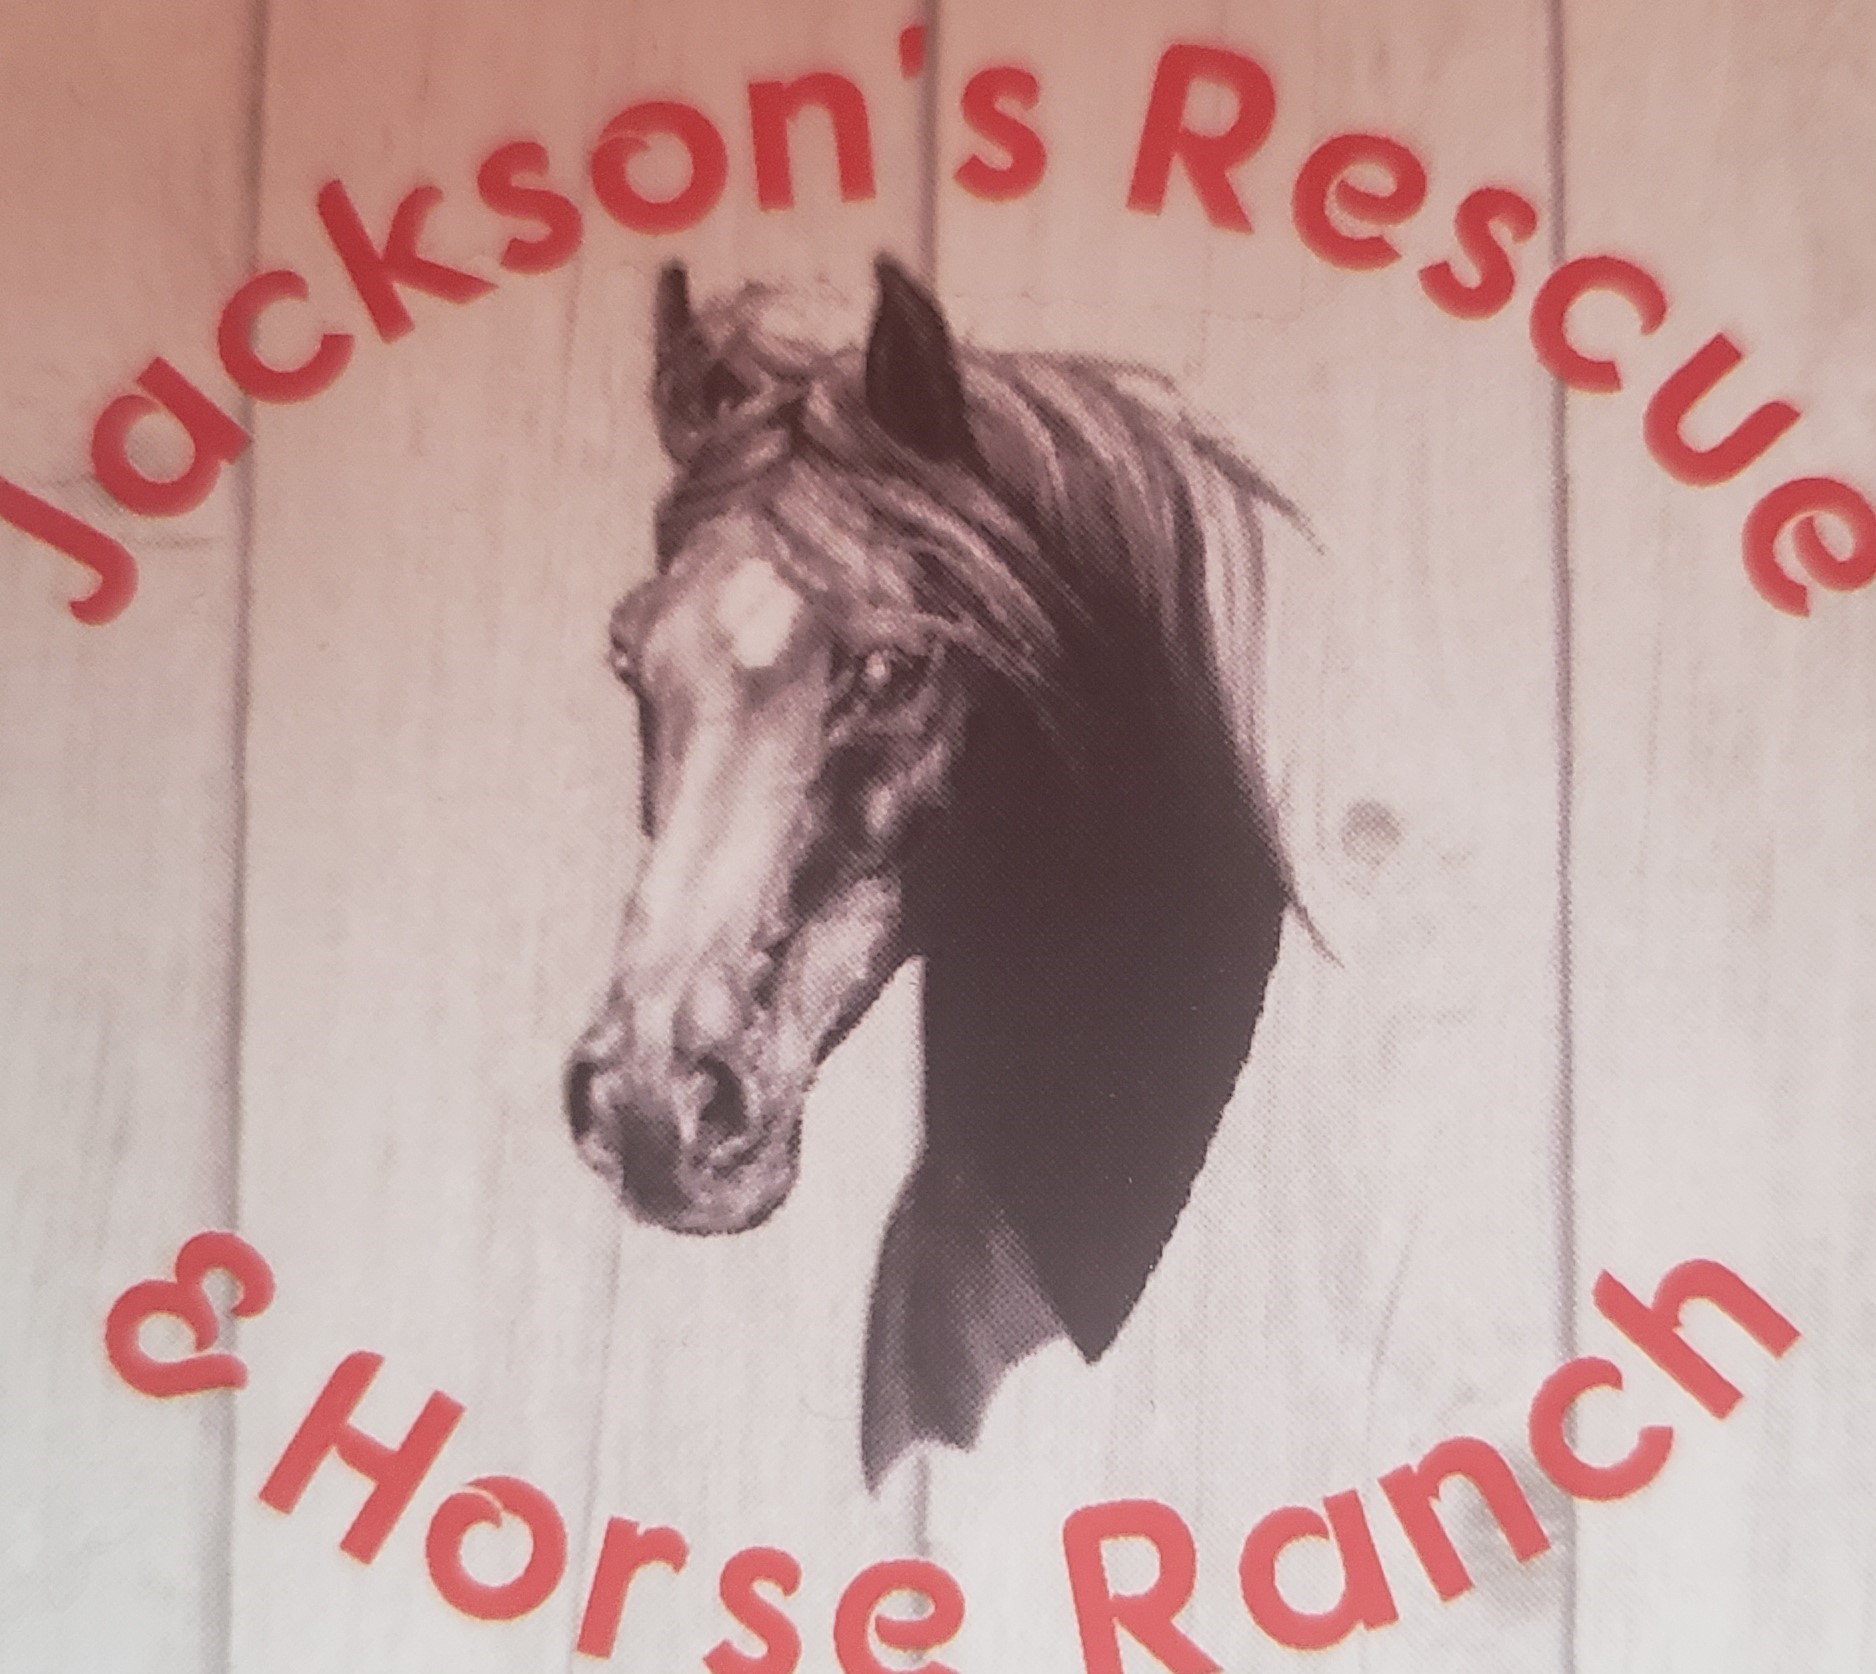 Jackson's Rescue and Horse Ranch